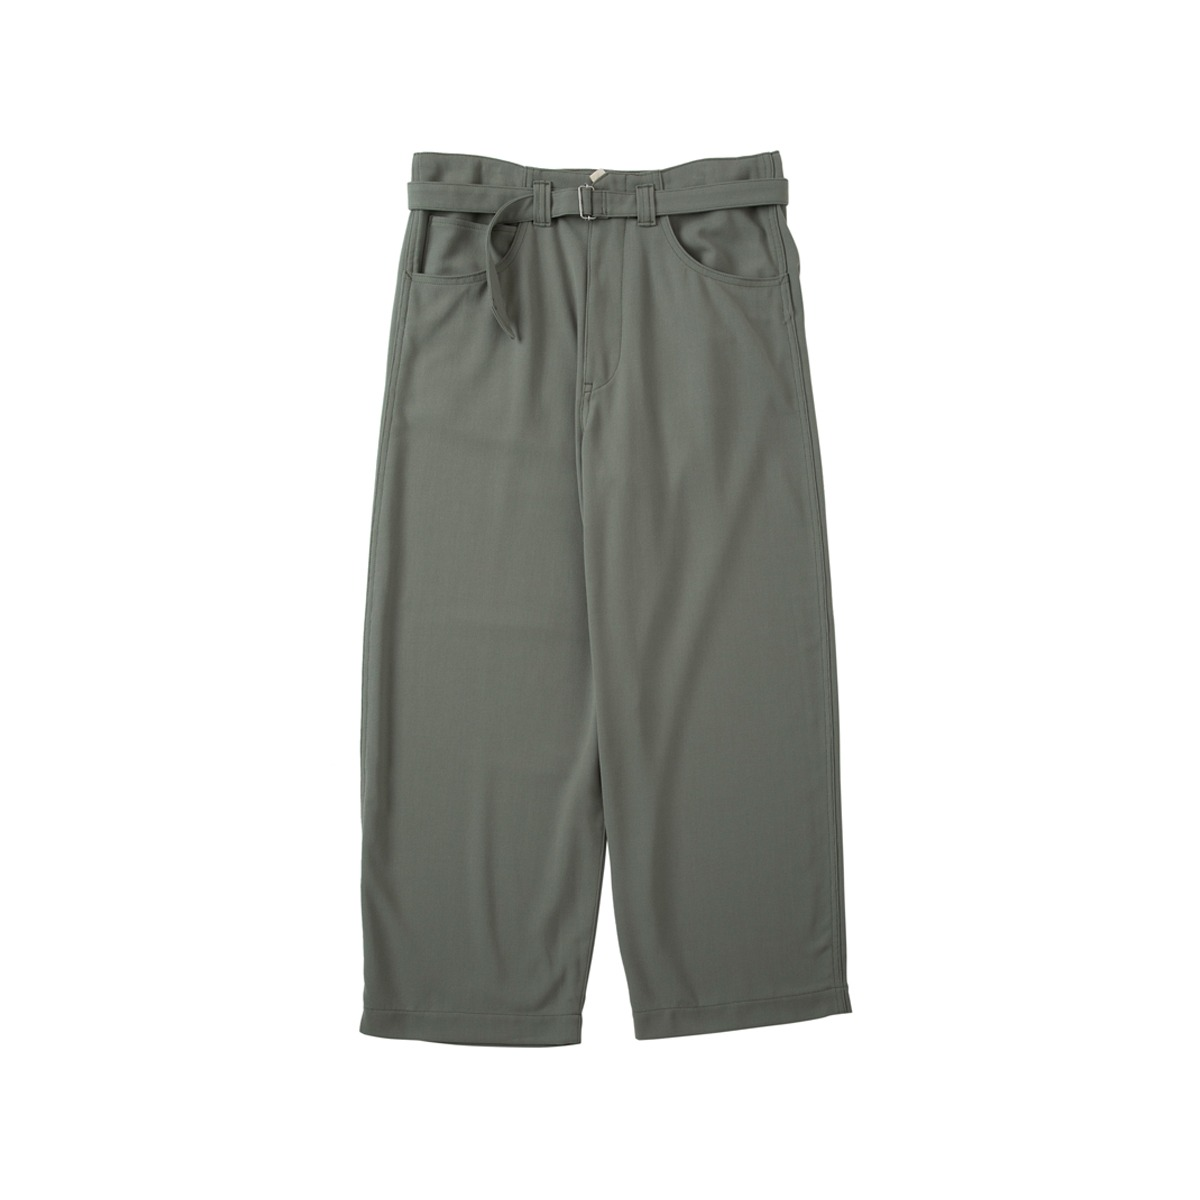 [SABY] SUPER BIG PANTS - 40/4 DRY HEAVY TWILL 'L.KHAKI'